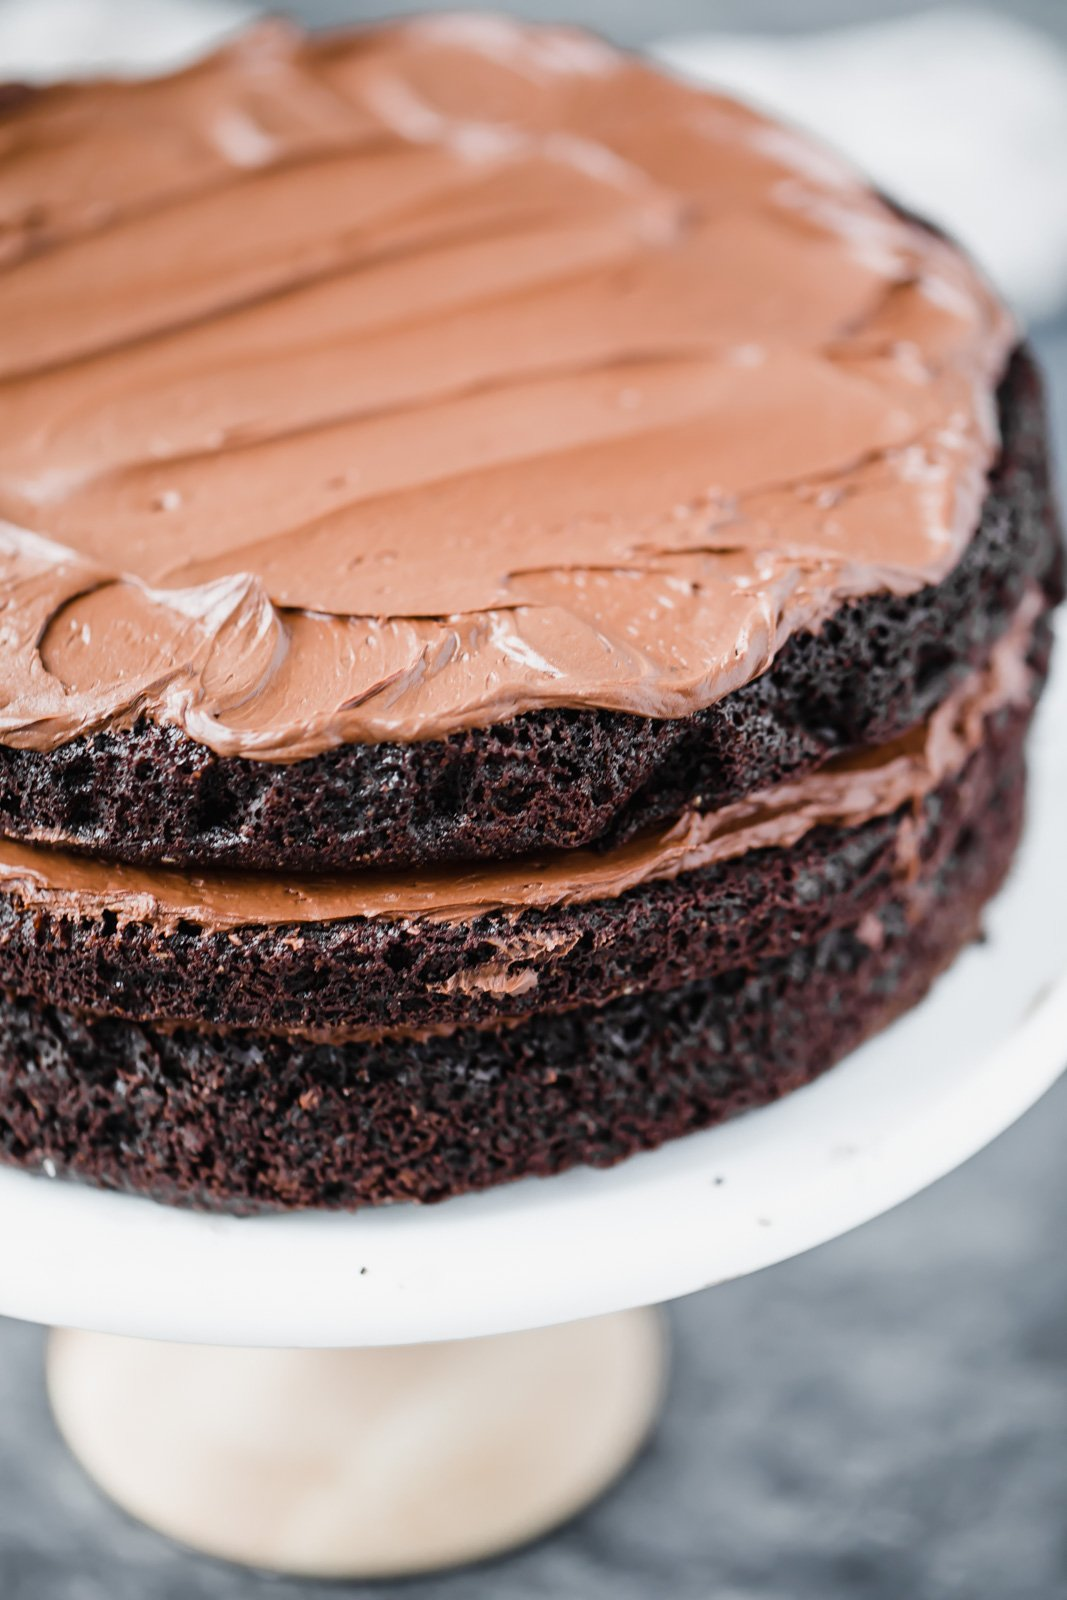 paleo chocolate frosting on a cake